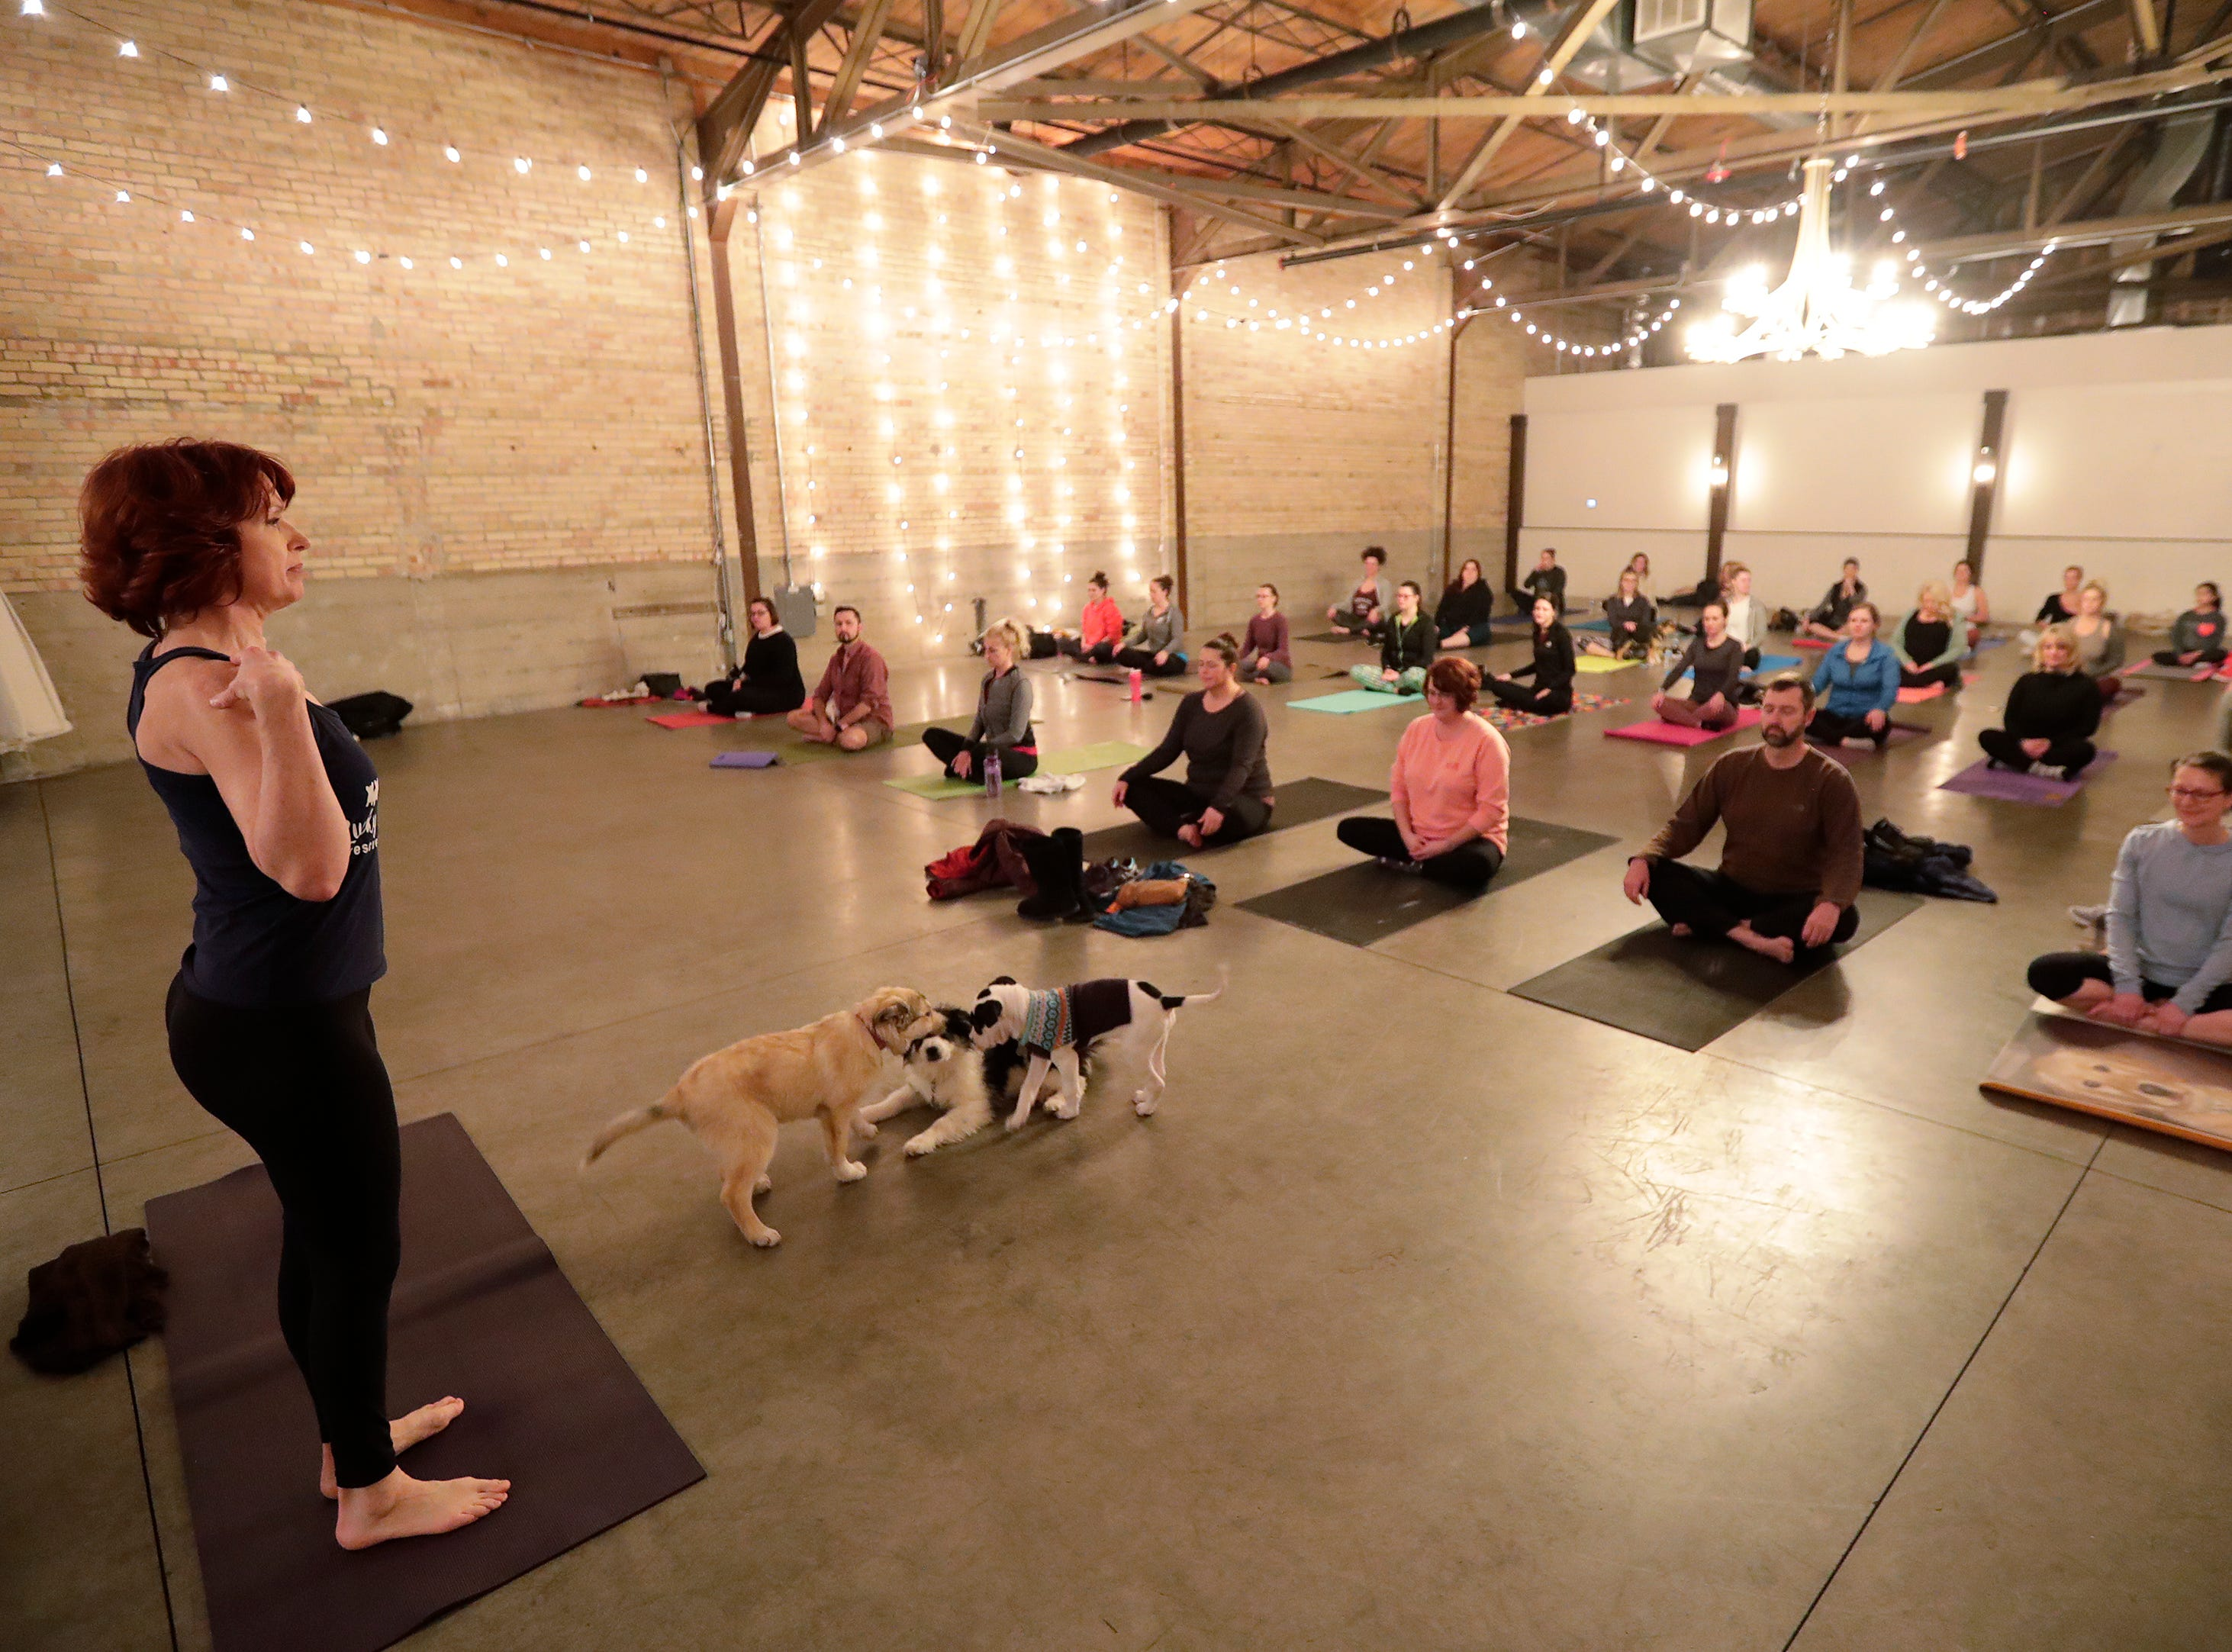 Puppies from Lucky 7 Dog Rescue play during a Yoga With Puppies class at Gather on Broadway on Wednesday, January 9, 2019 in Green Bay, Wis.